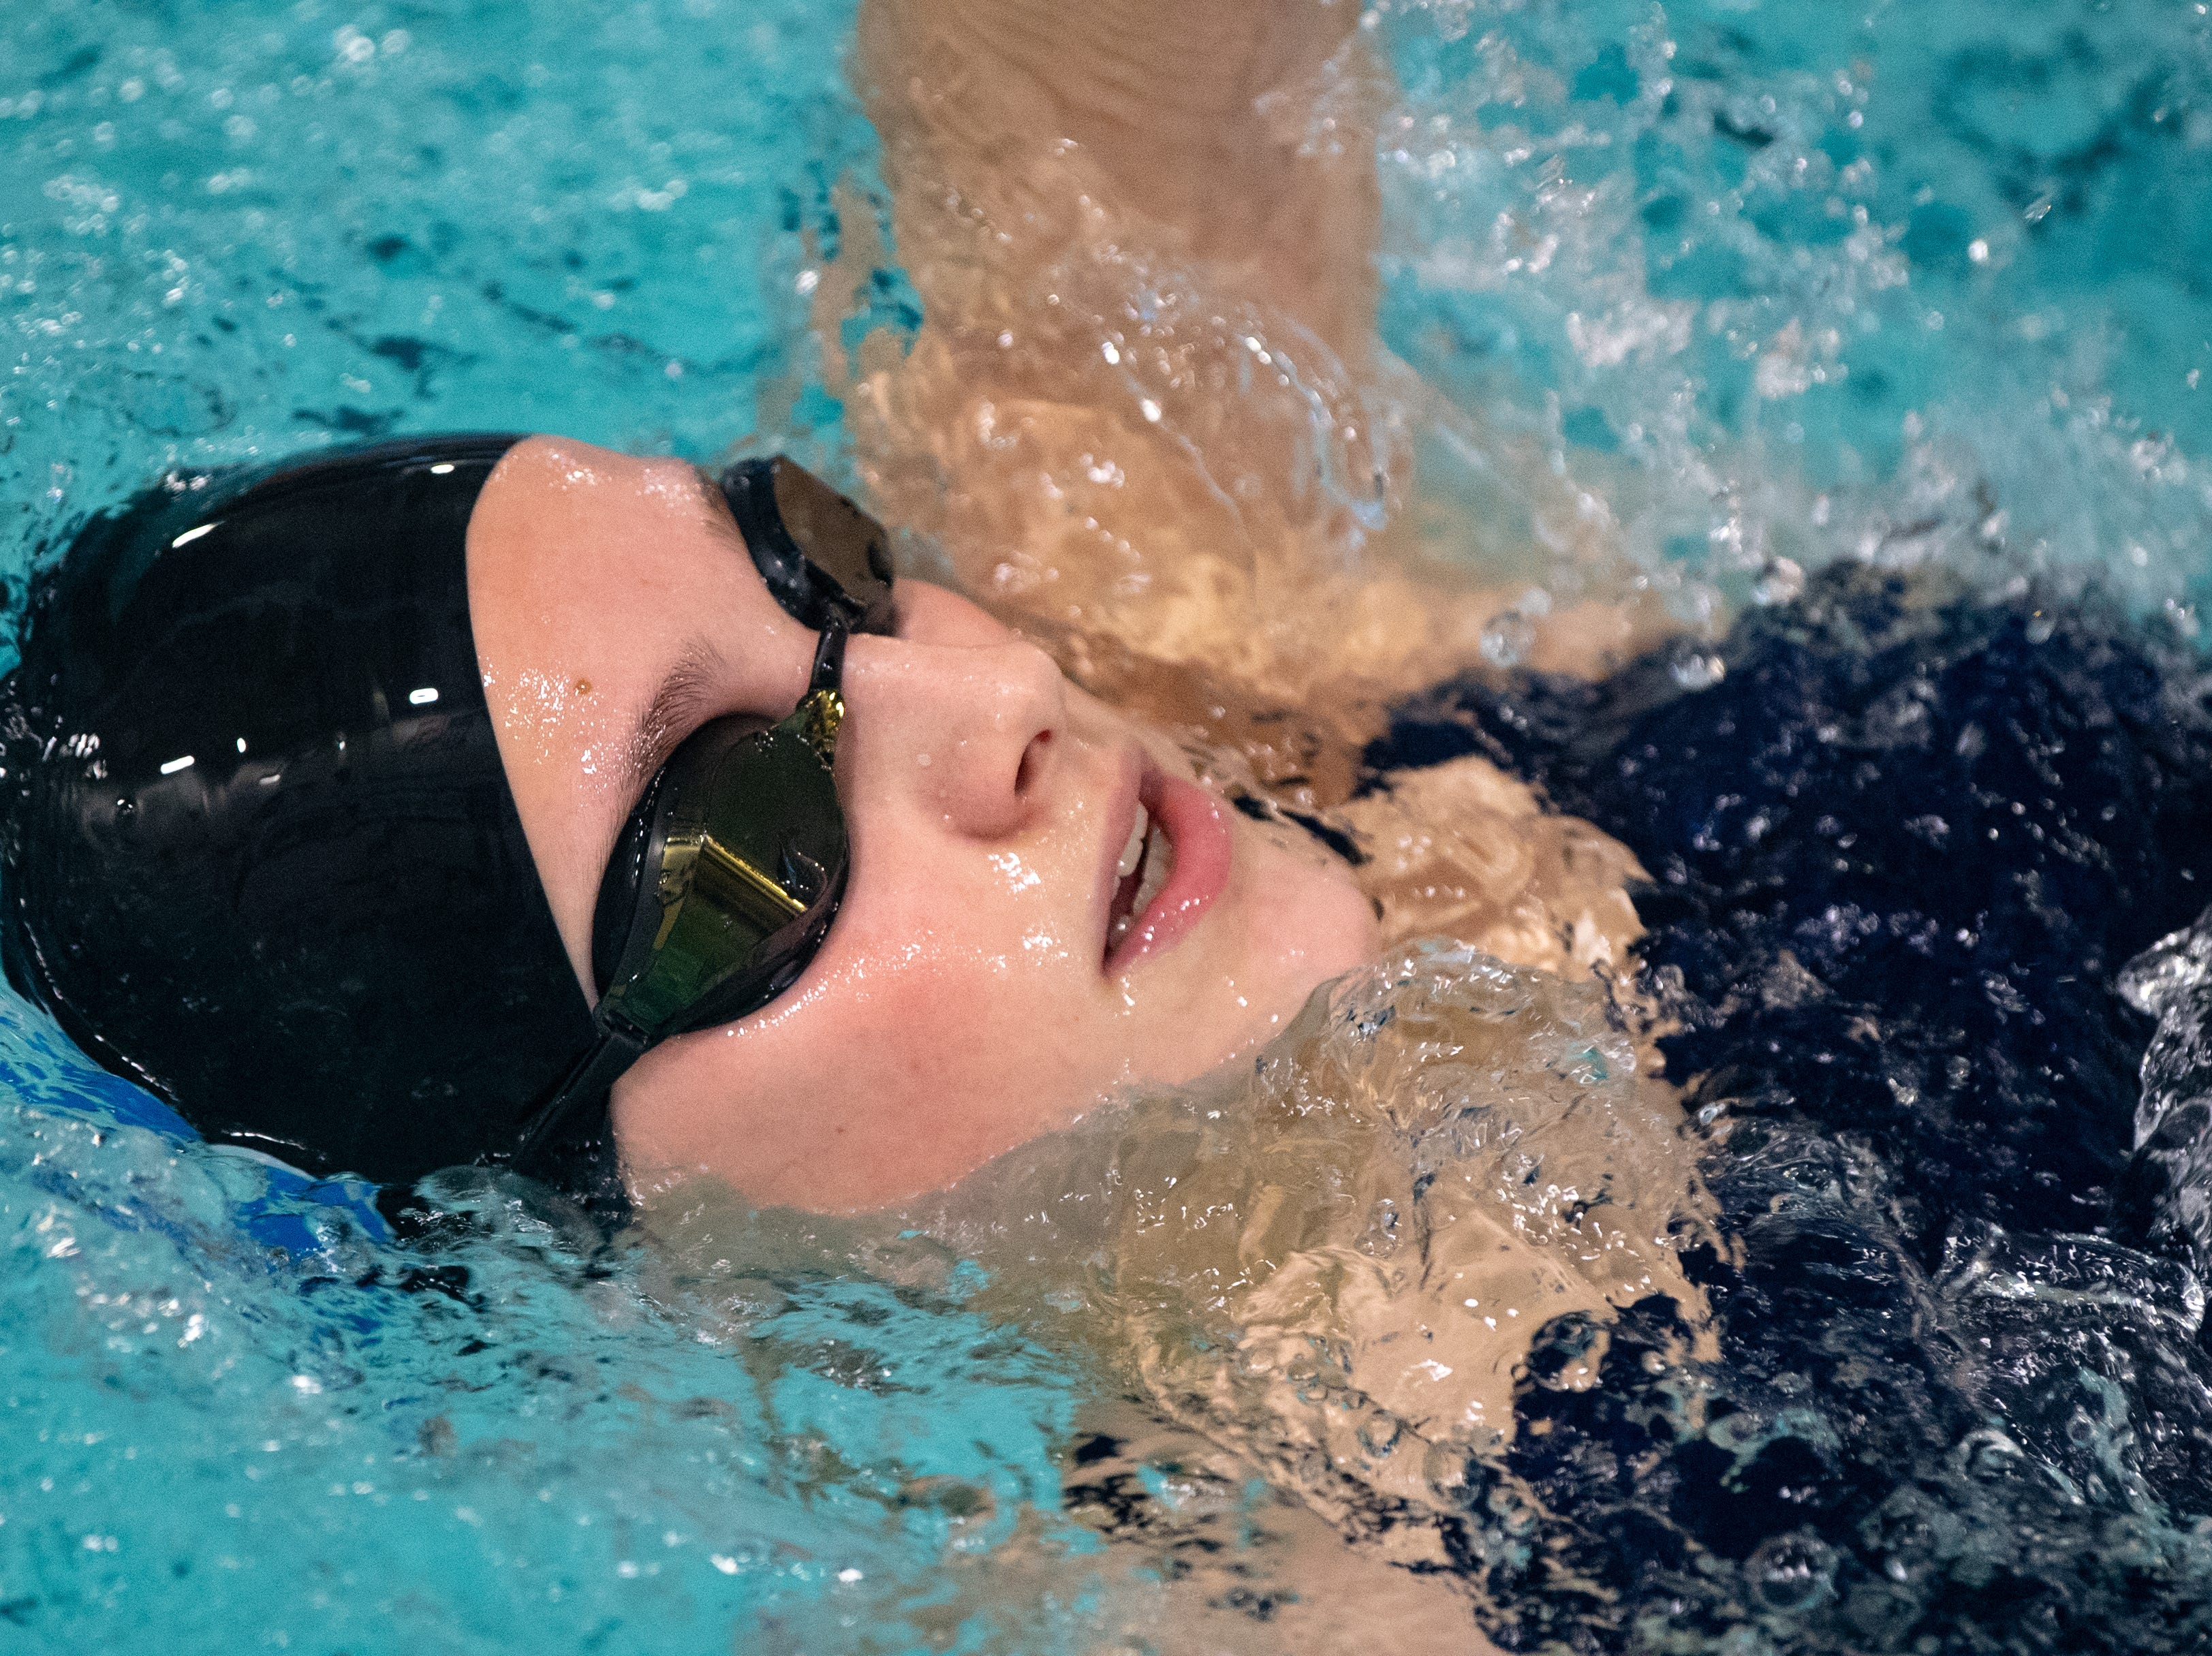 Katherine O'Rourke of Dallastown keeps pace with her opponents during the boys' and girls' swim meet between Dallastown and Central York. The Panthers defeated the Wildcats 93 to 77 and the Lady Panthers defeated the Lady Wildcats 96 to 74.